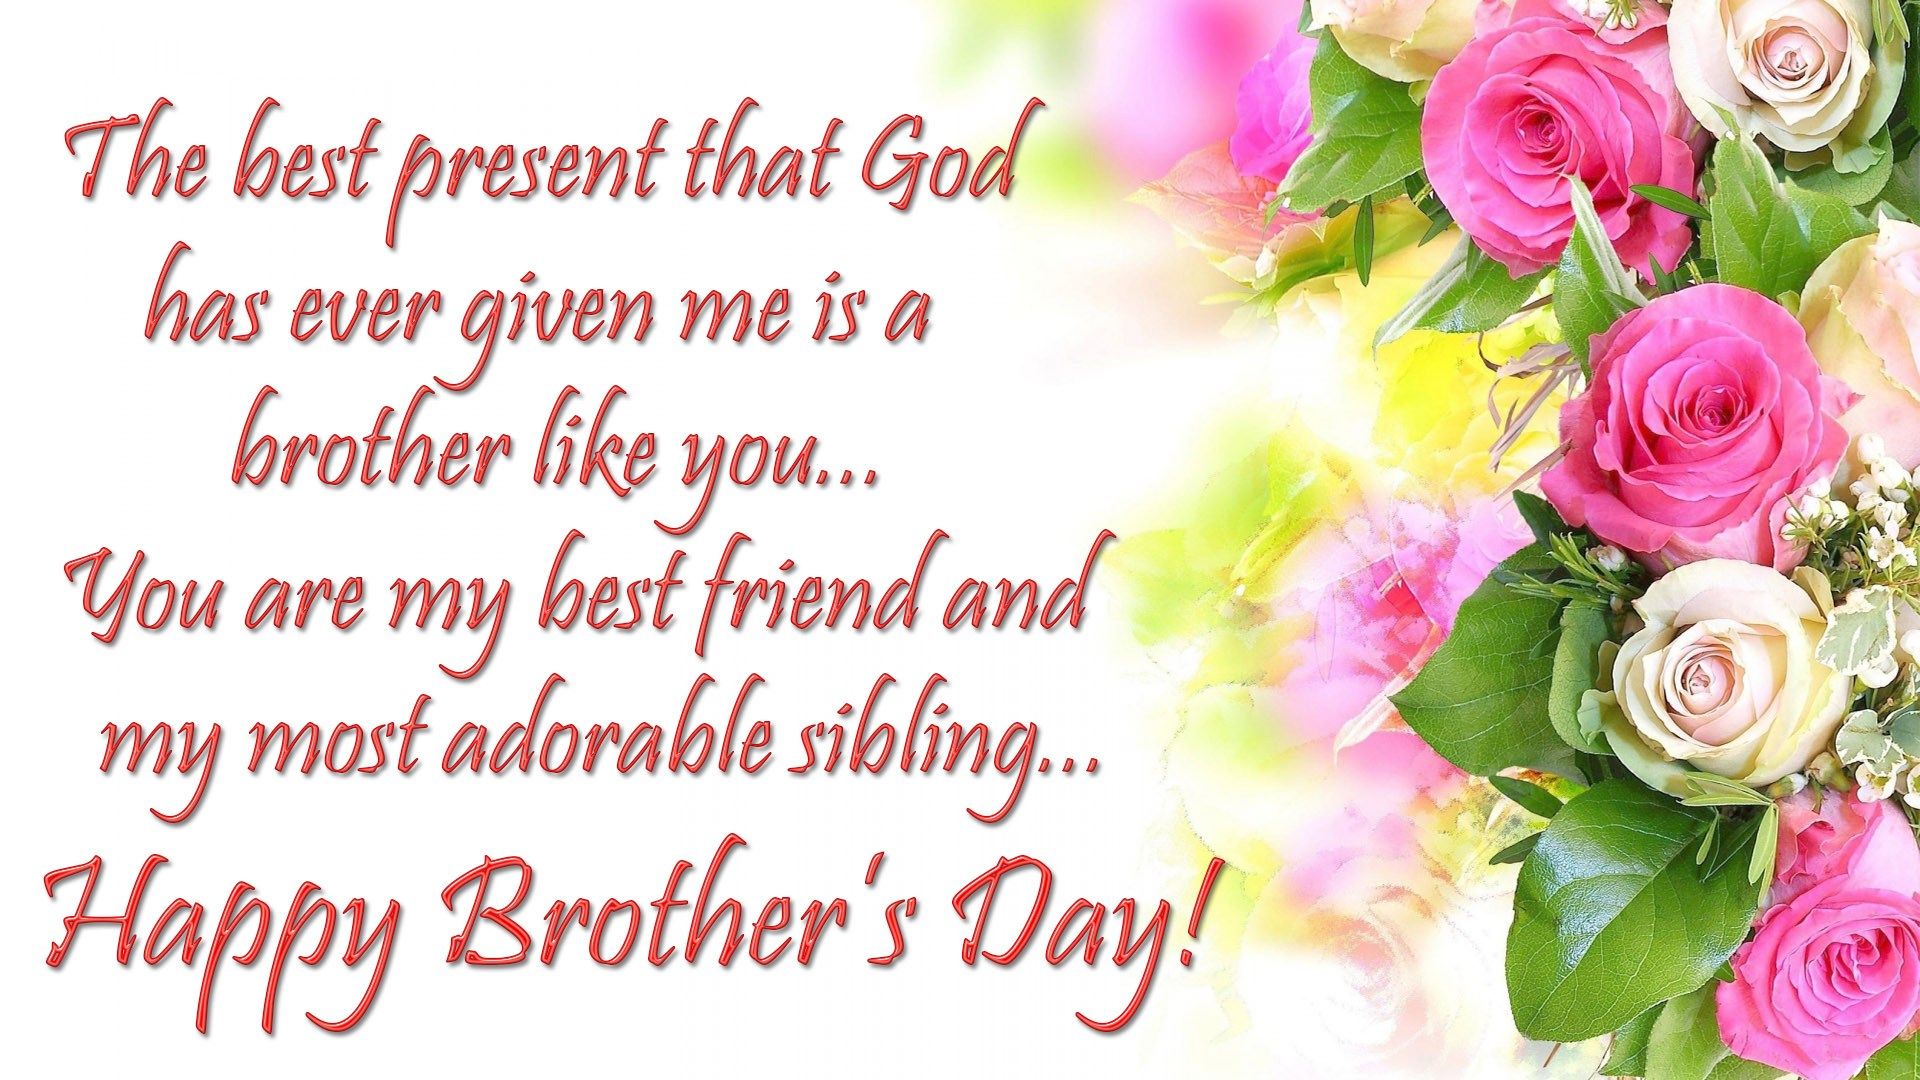 Happy Brothers Day Wishes Messages Images   Wishes Quotes Images 1920x1080